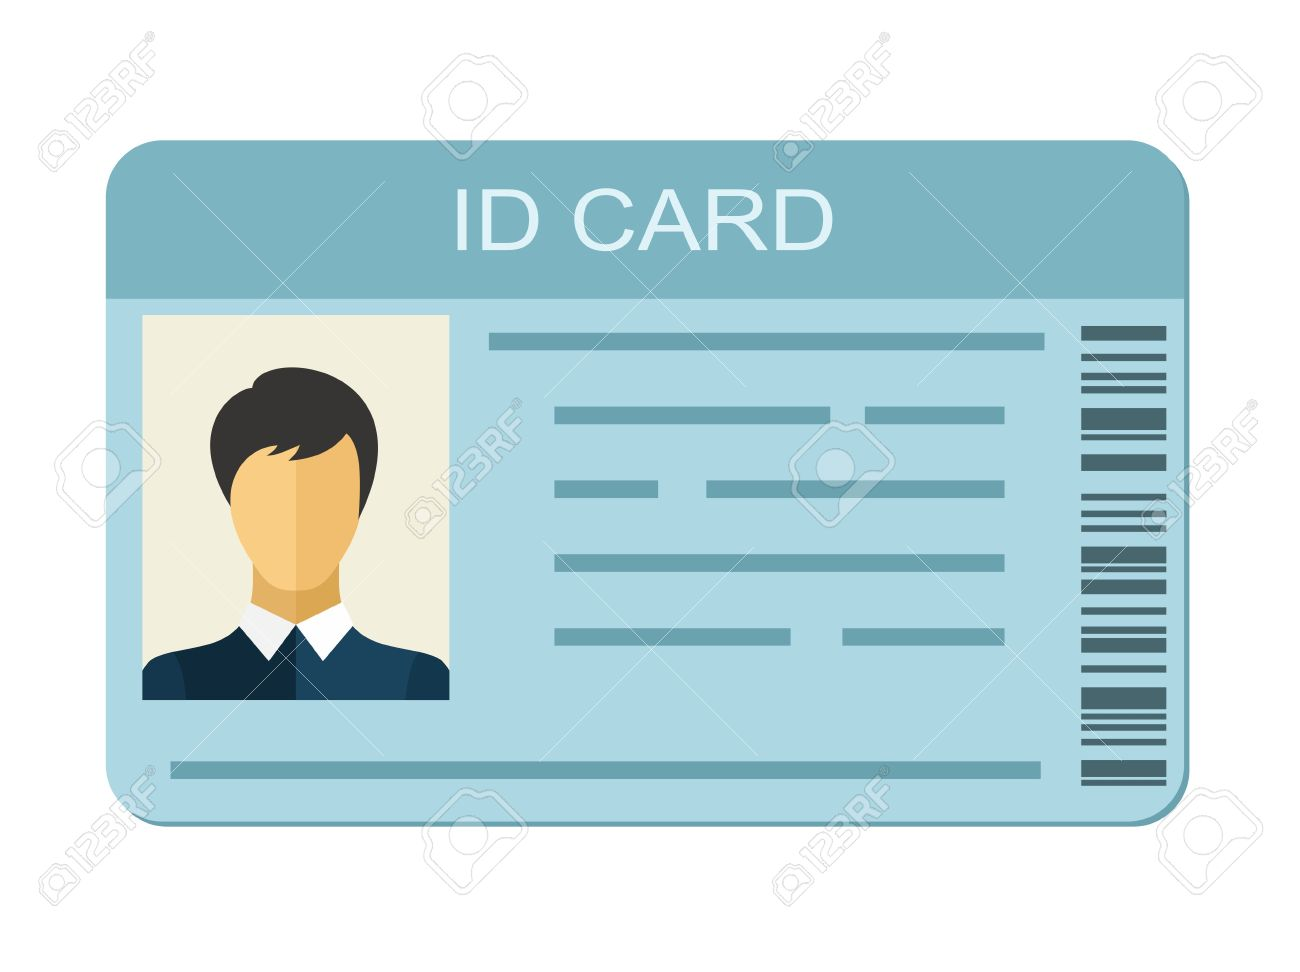 hight resolution of id card isolated on white background identification card icon business identity id card icon